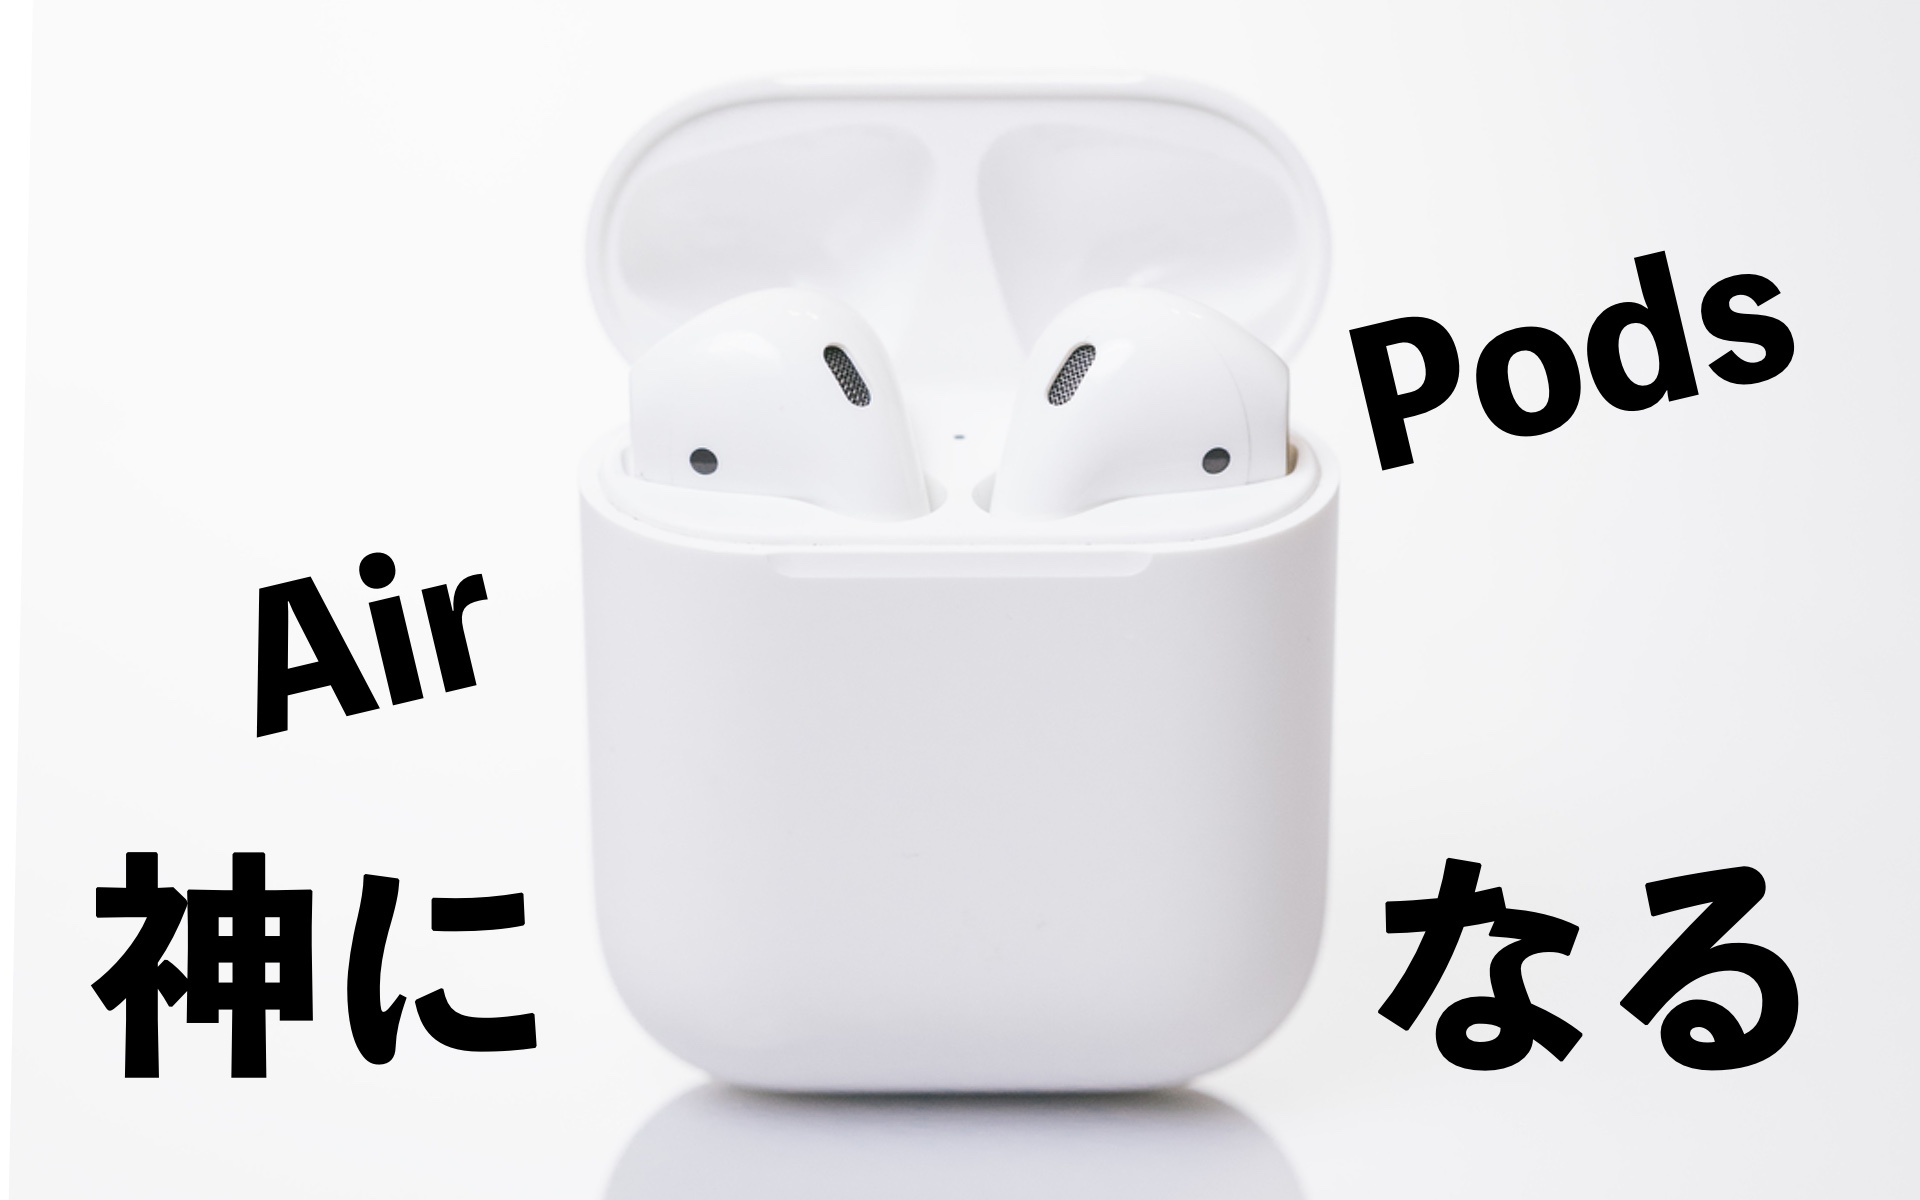 AirPodsの画像